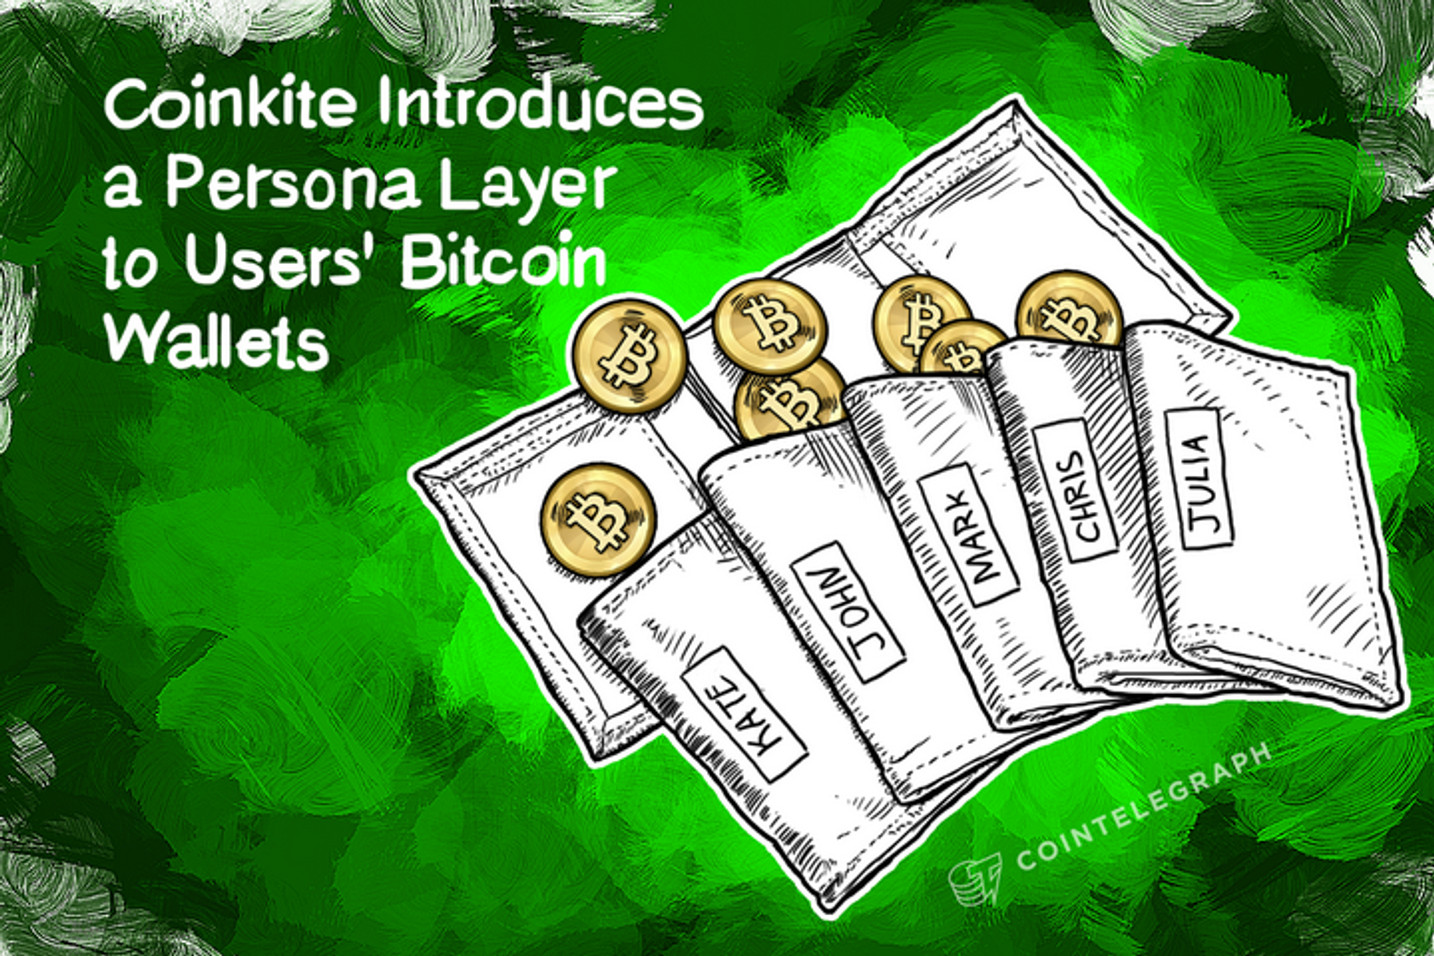 Coinkite Introduces a Persona Layer to Users' Bitcoin Wallets